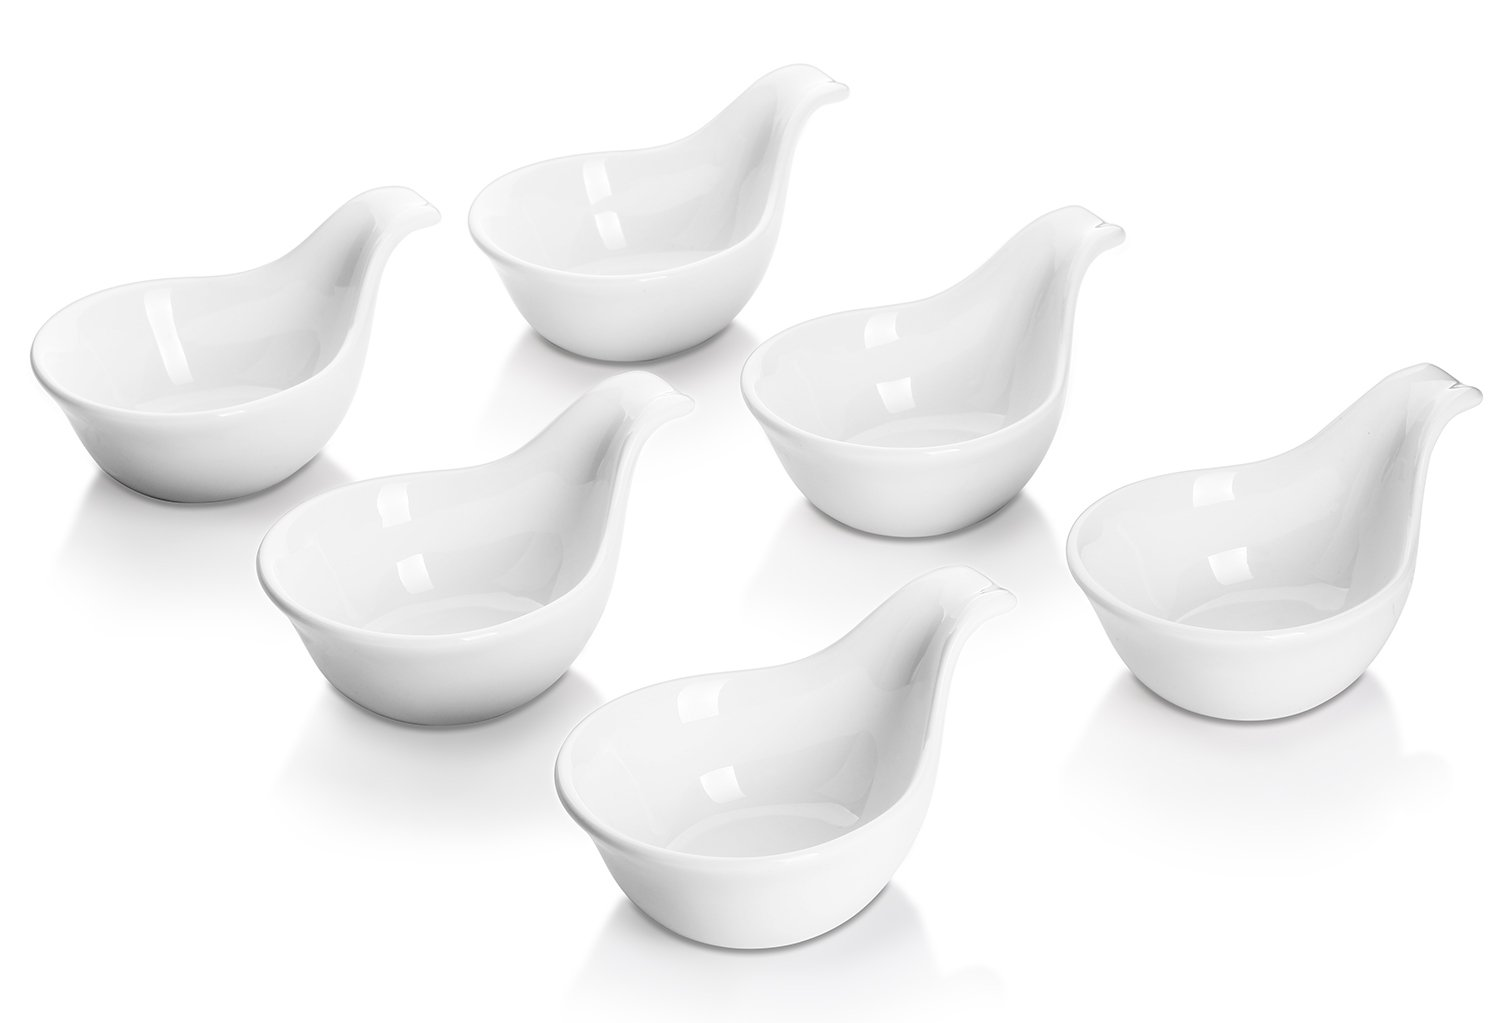 DOWAN 3oz Porcelain Dipping Bowls/Soy Sauce Dishes/Appetizer Spoons - 6 Packs, White, Stackable Ramekins with Grip Handle